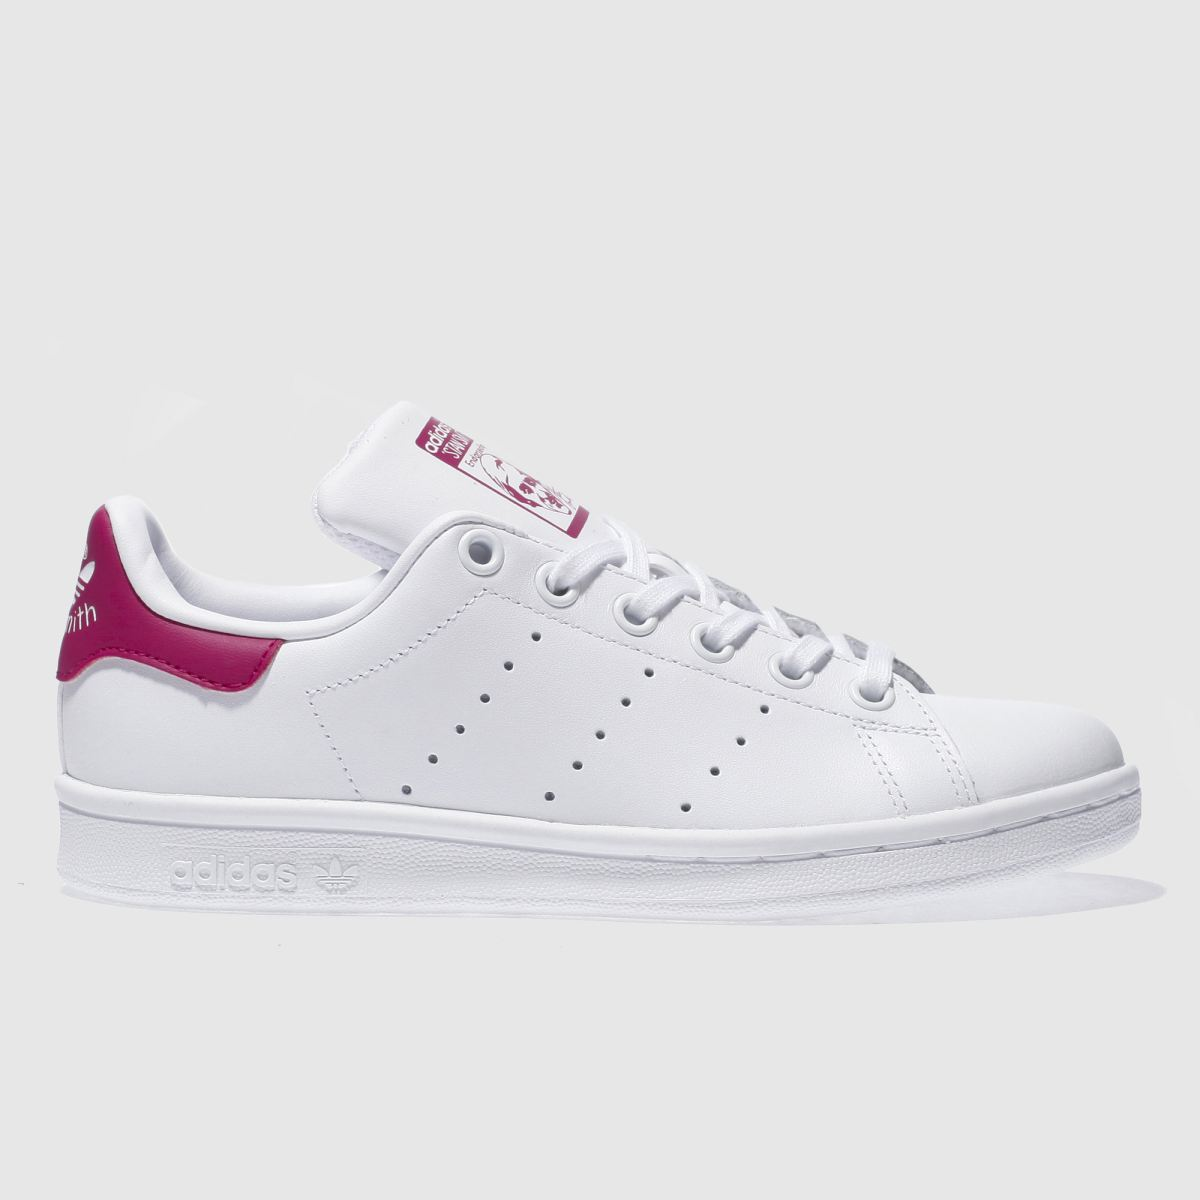 c4d40648a0b Adidas Stan Smith Velcro Uk Los Granados Apartment Co Uk